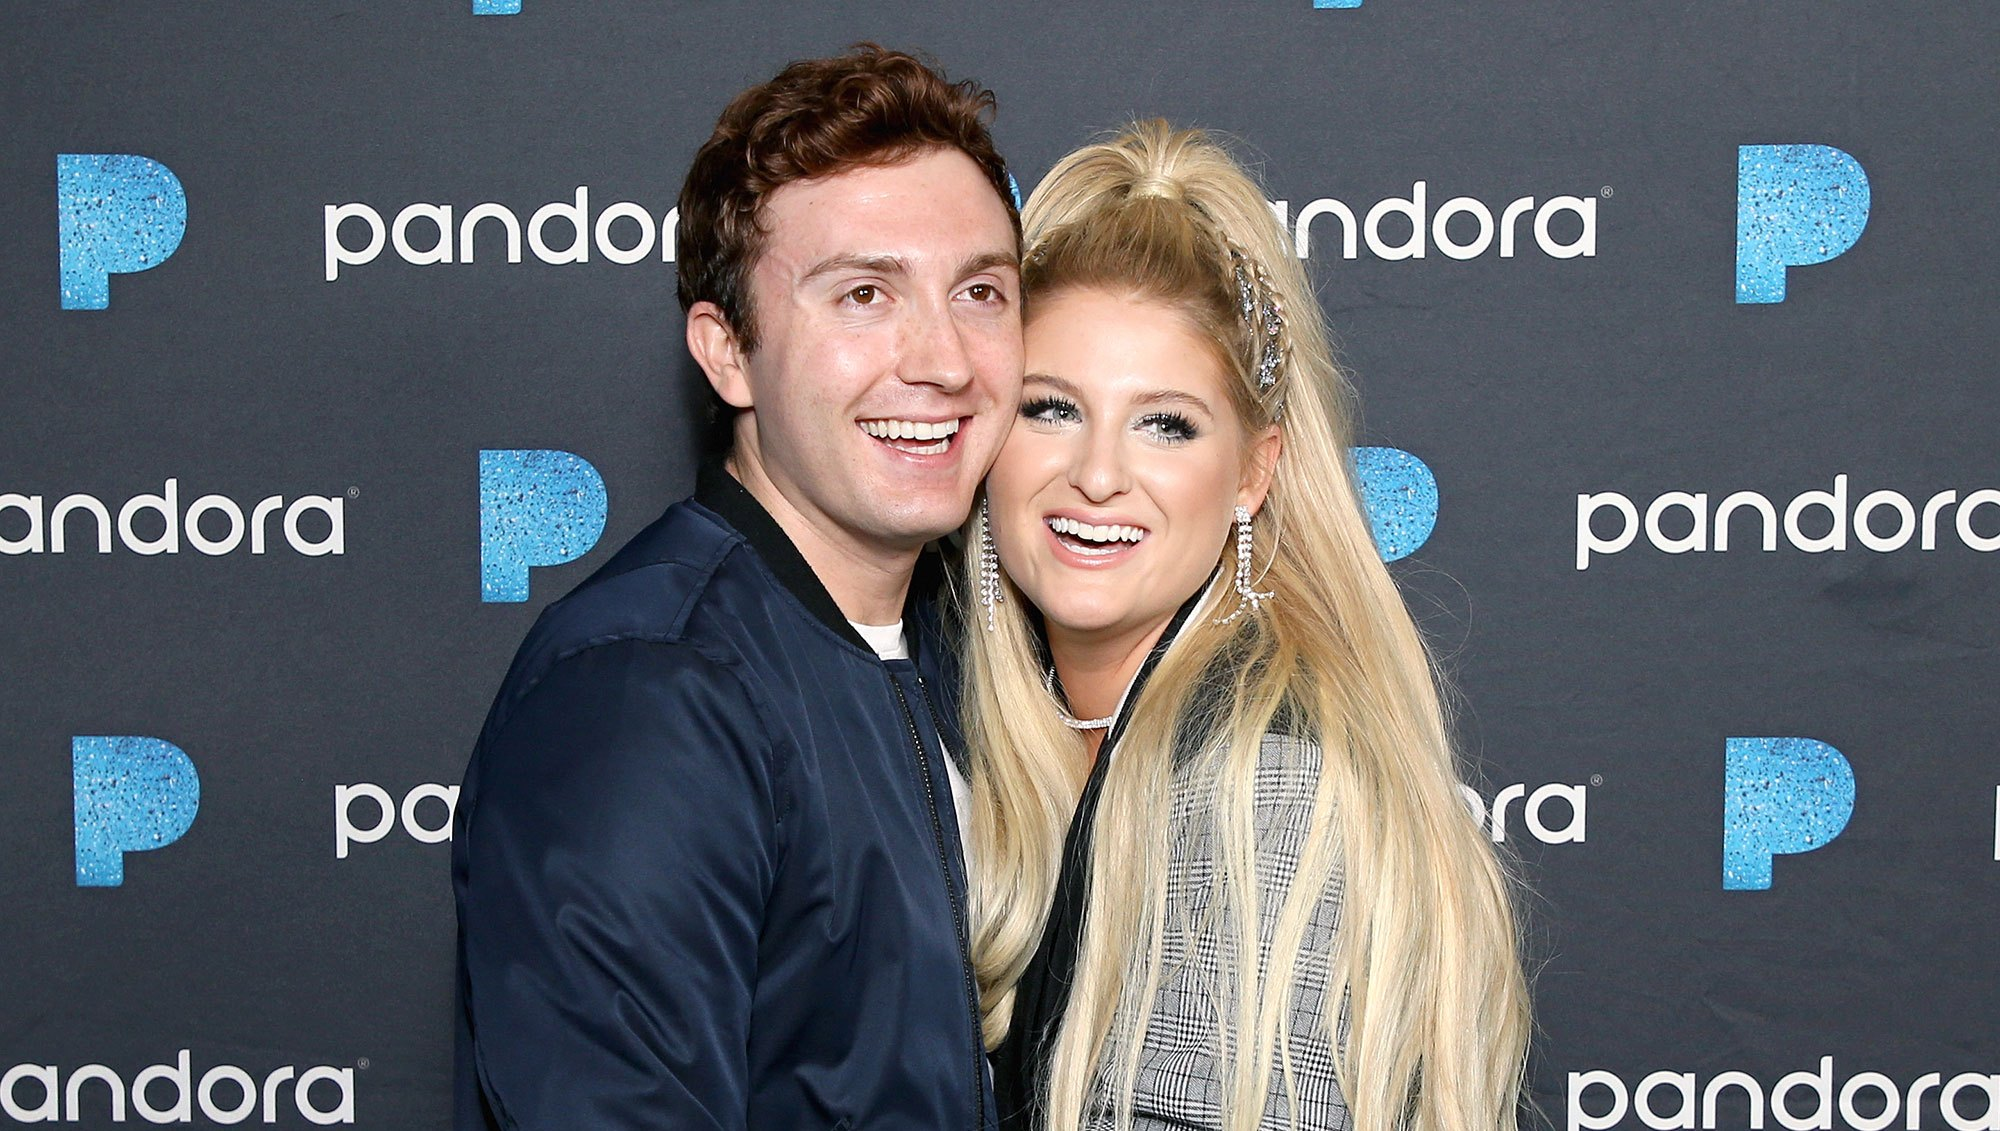 Daryl-Sabara-Is-Even-More-Lovey-Dovey-After-Wedding-to-Meghan-Trainor-1